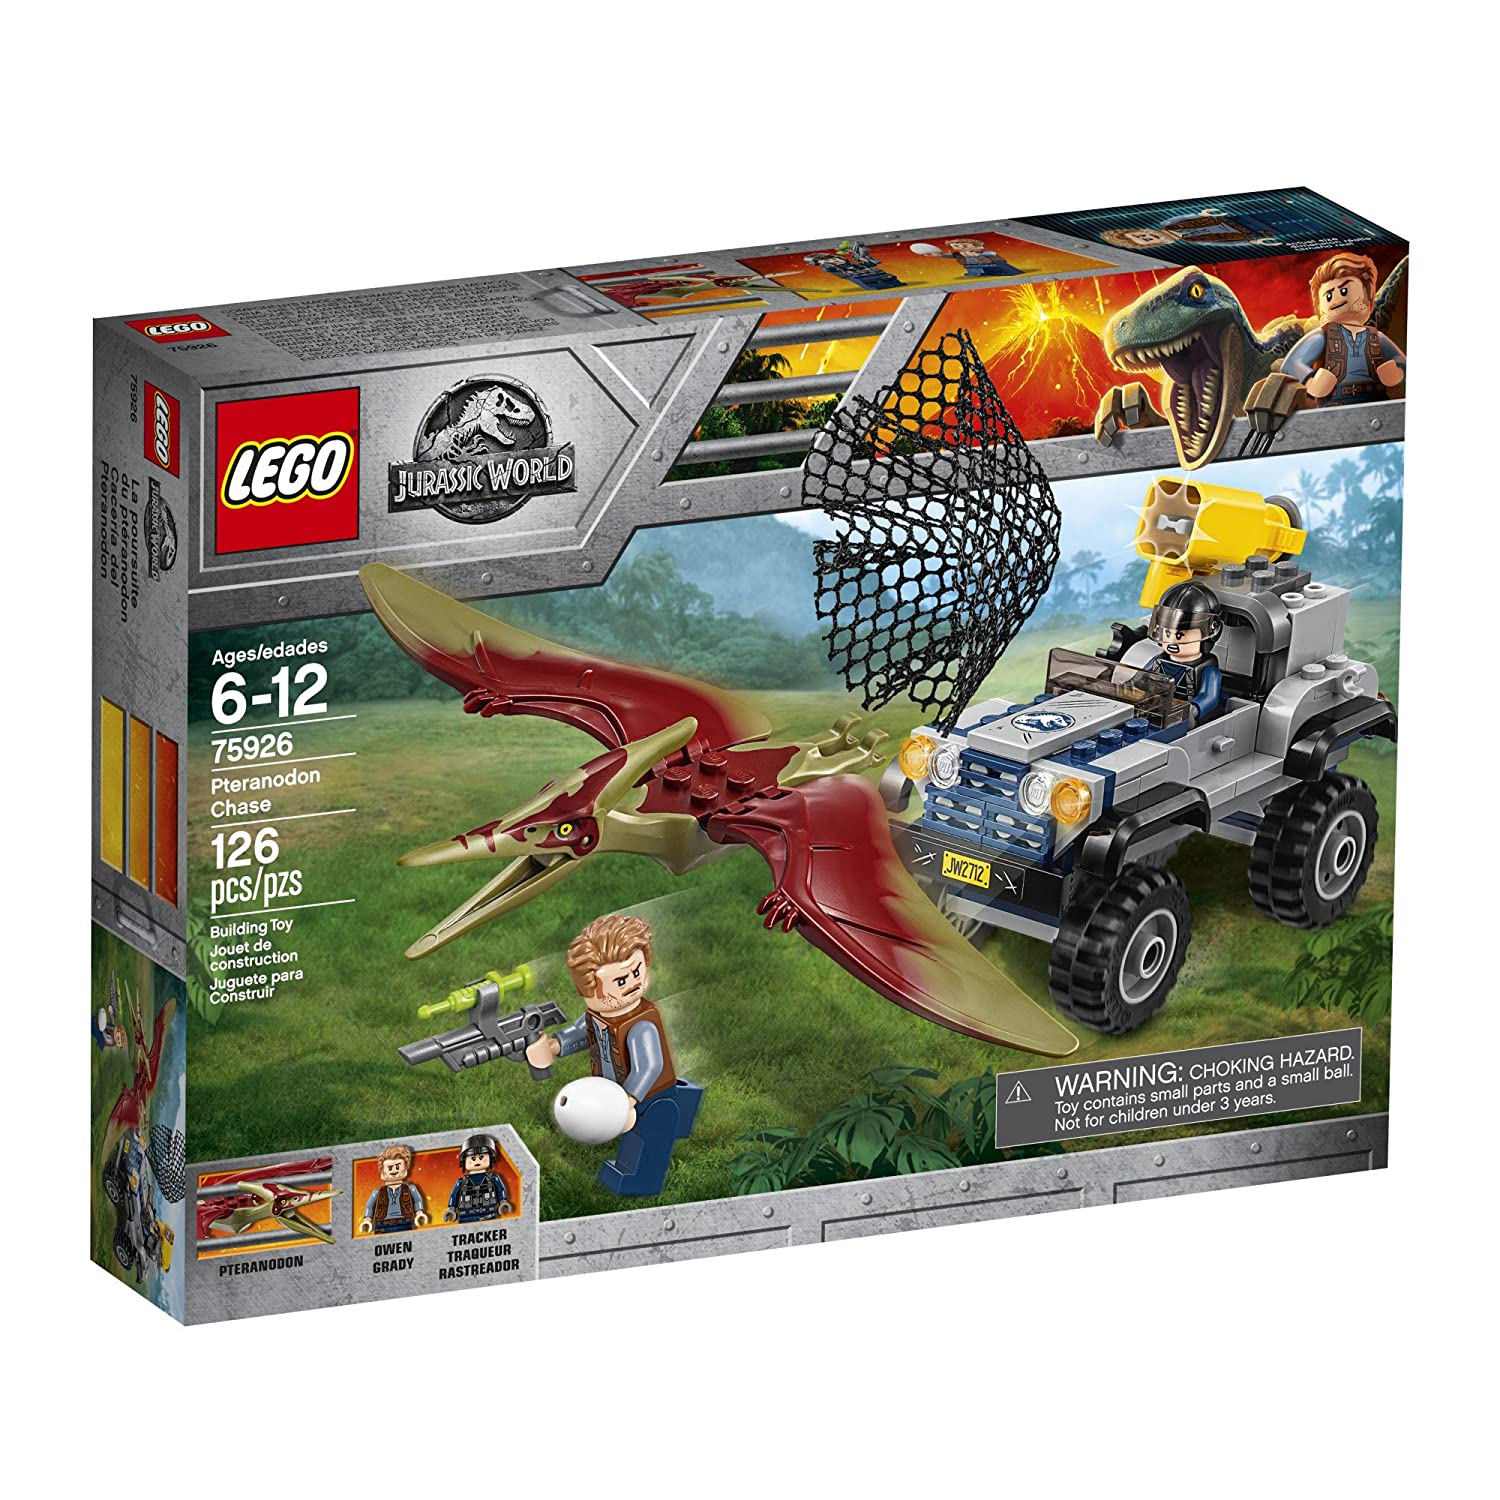 world toys helicopter with Lego Jurassic World Fallen Kingdom Sets Available On Amazon on Mosasaur Indominus Rex 585909418 further B 17gflyingfortress also Year 2018 further Suri Parked In My Backyard What 150000week Can Get You in addition Editorial Dear Lego Australia Please Let Us Buy Your Product.